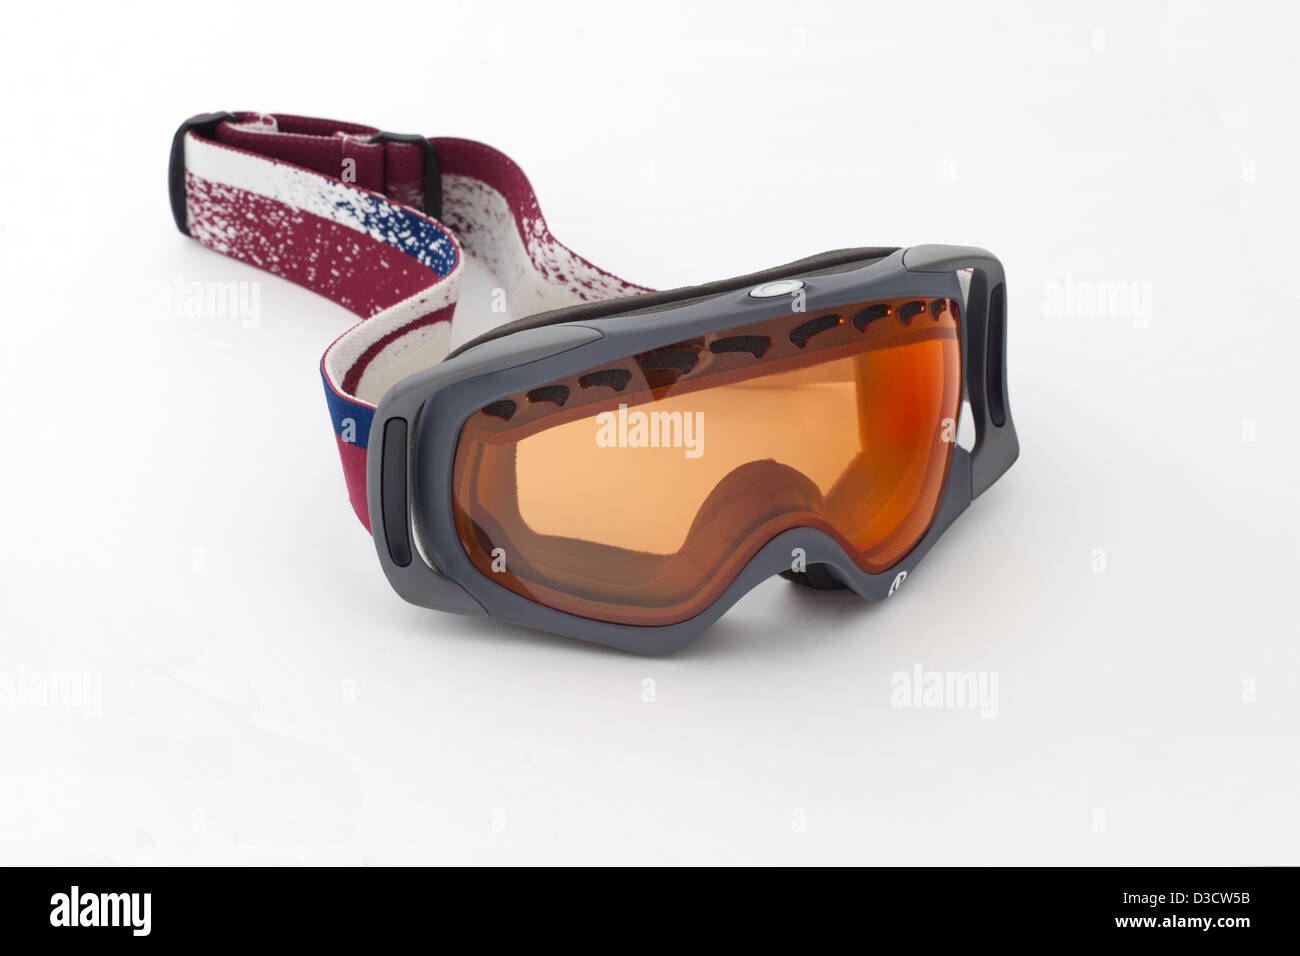 Close up of a pair of Ski Goggles against a white background - Stock Image